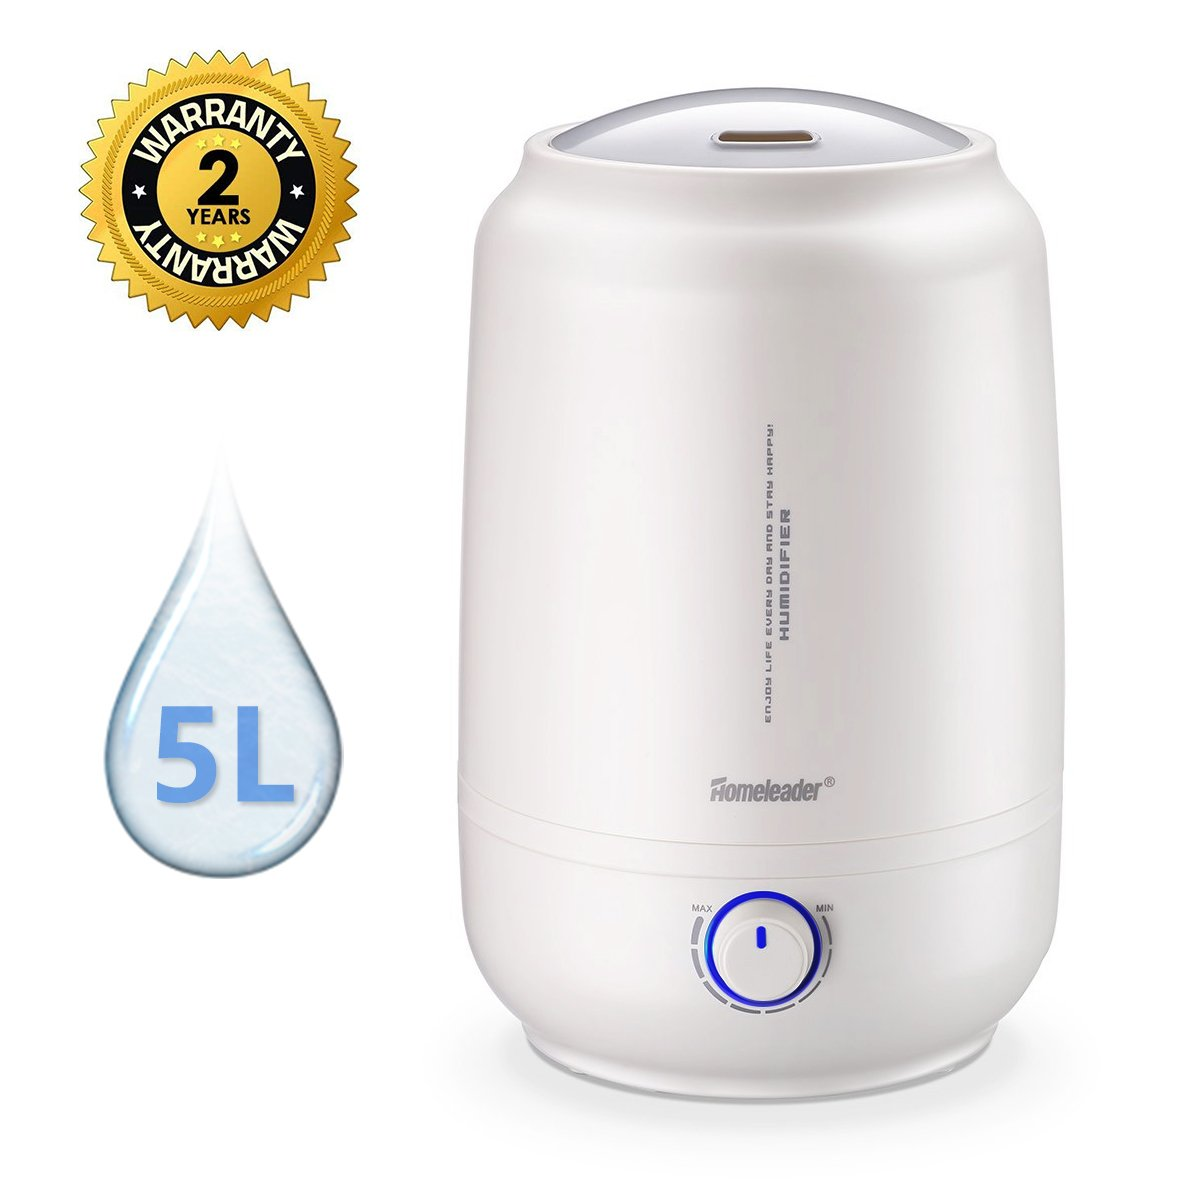 Homeleader Cool Mist Humidifier, Air Humidifier for Home, 5L Large Capacity Ultrasonic Air Humidifier Waterless Auto Shut-off with Adjustable Mist, Whisper-Quiet Operation